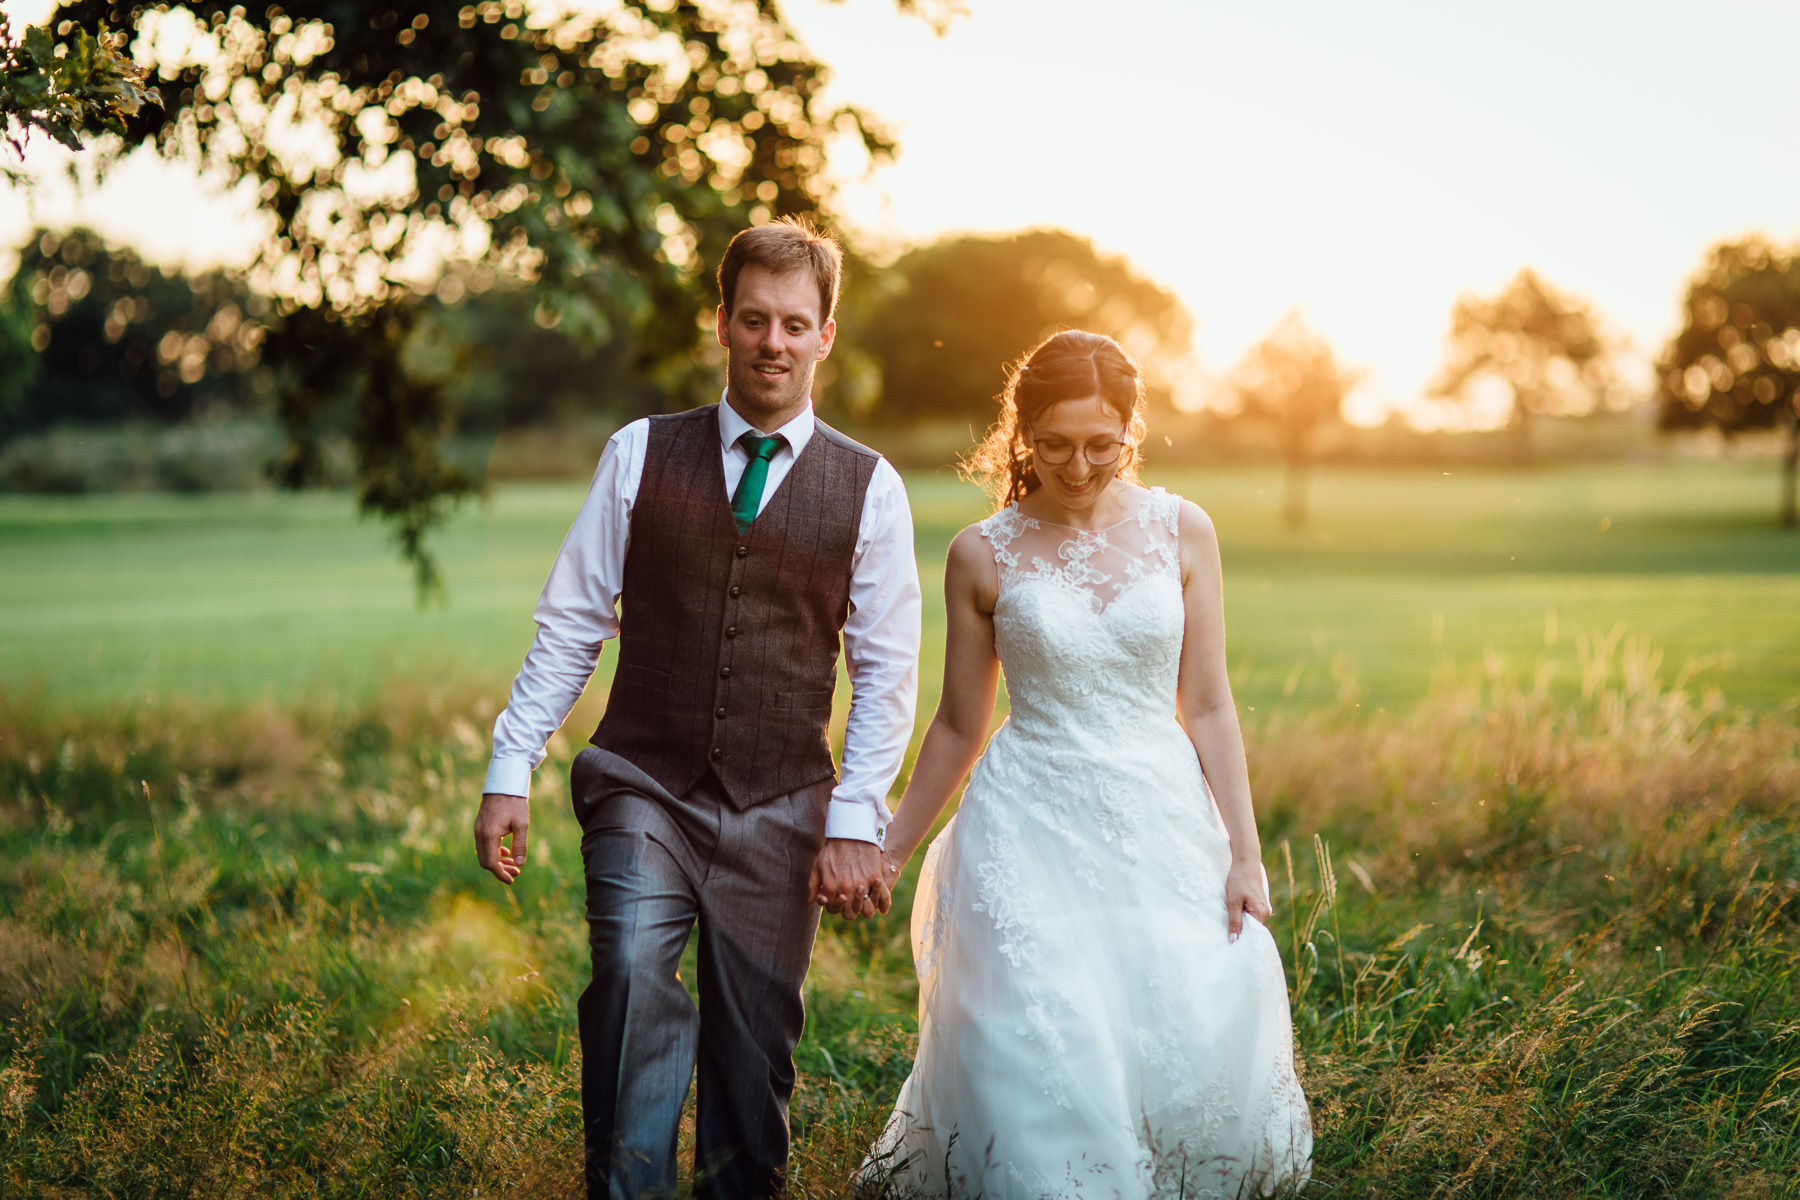 Wedding photography at Pryors Hayes of the bride and groom